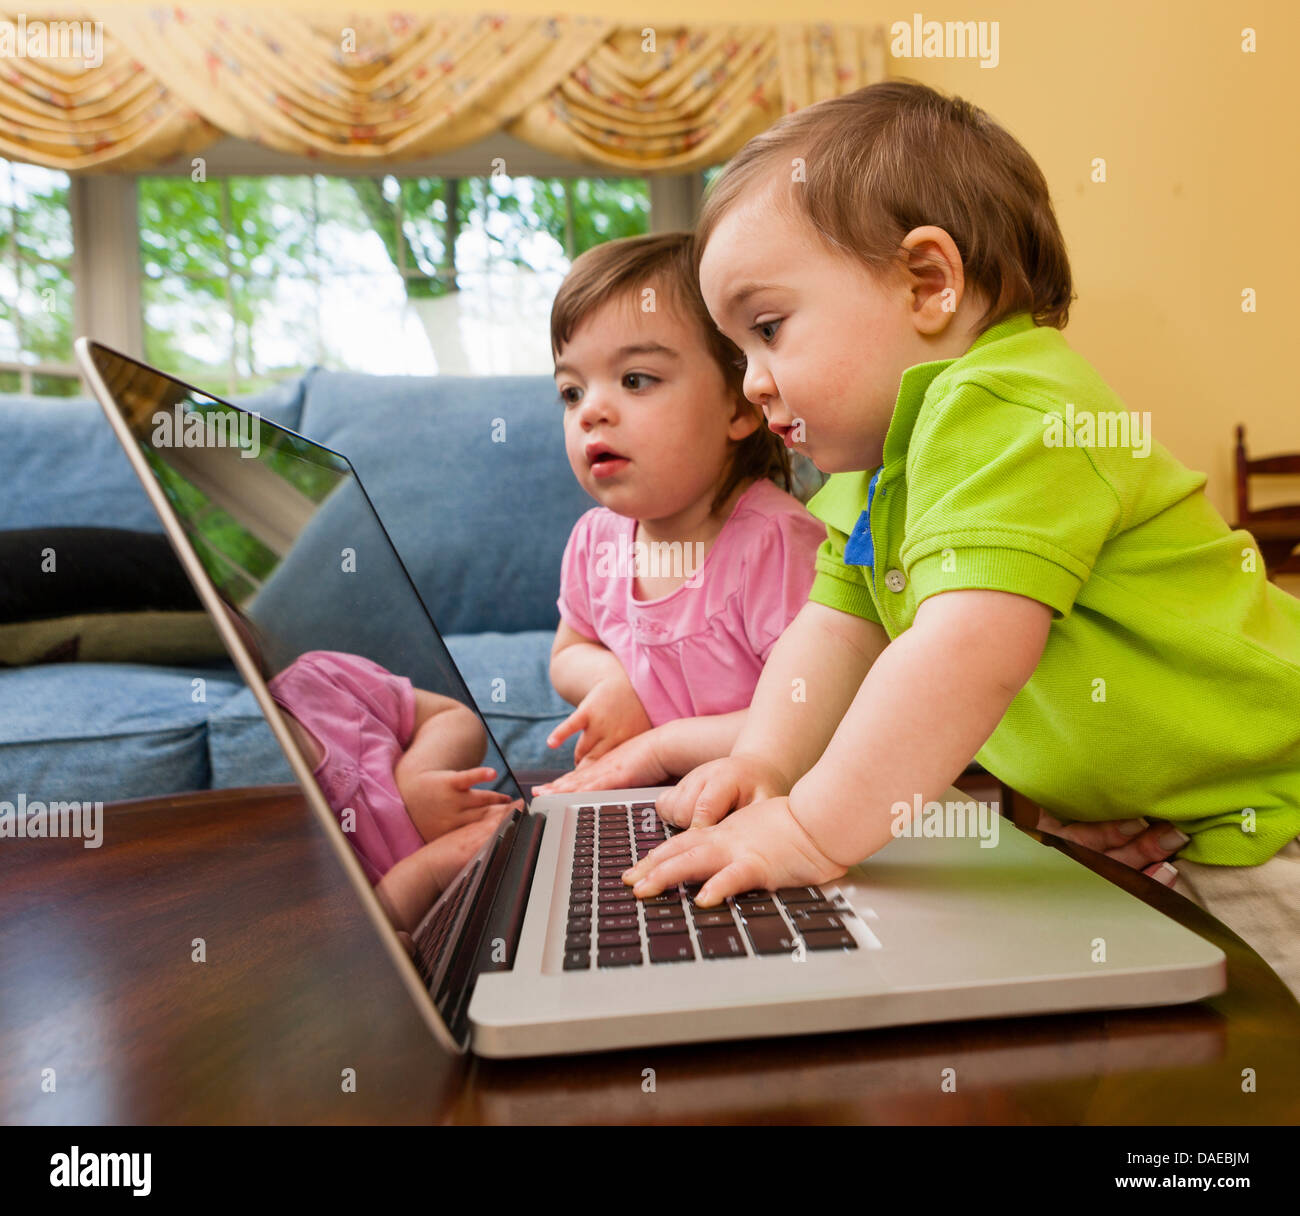 Two young toddlers playing with laptop - Stock Image